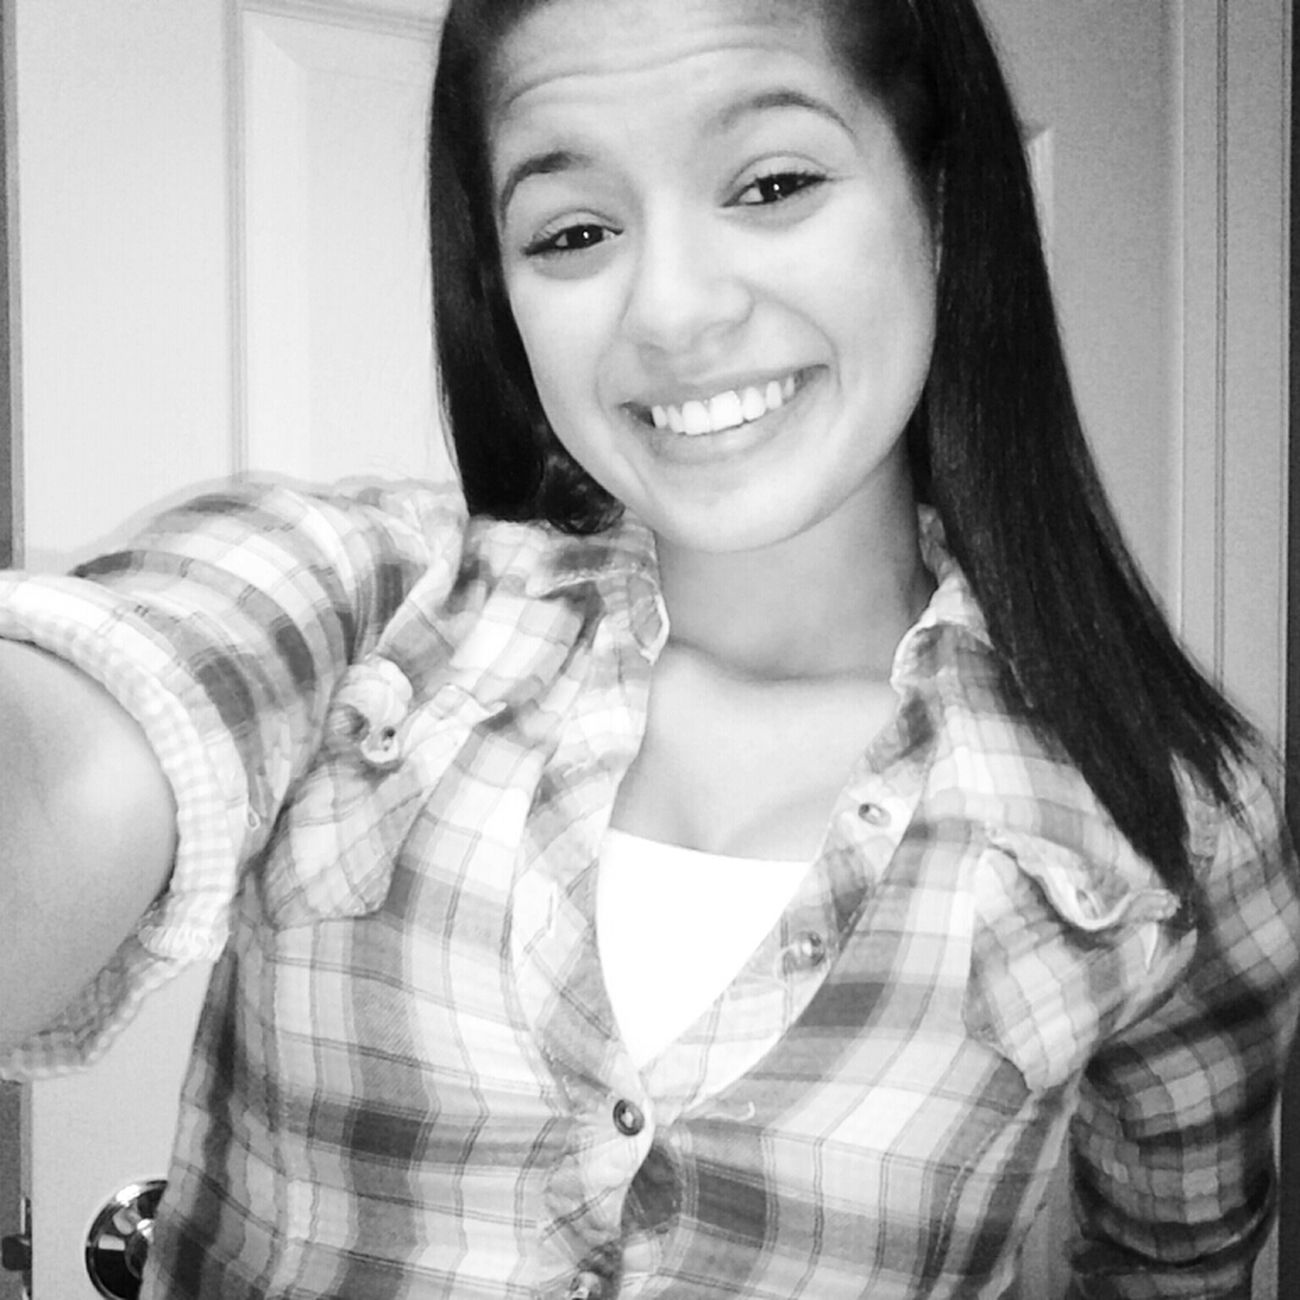 Today was a good day #plaid #BACKTODARKHURR